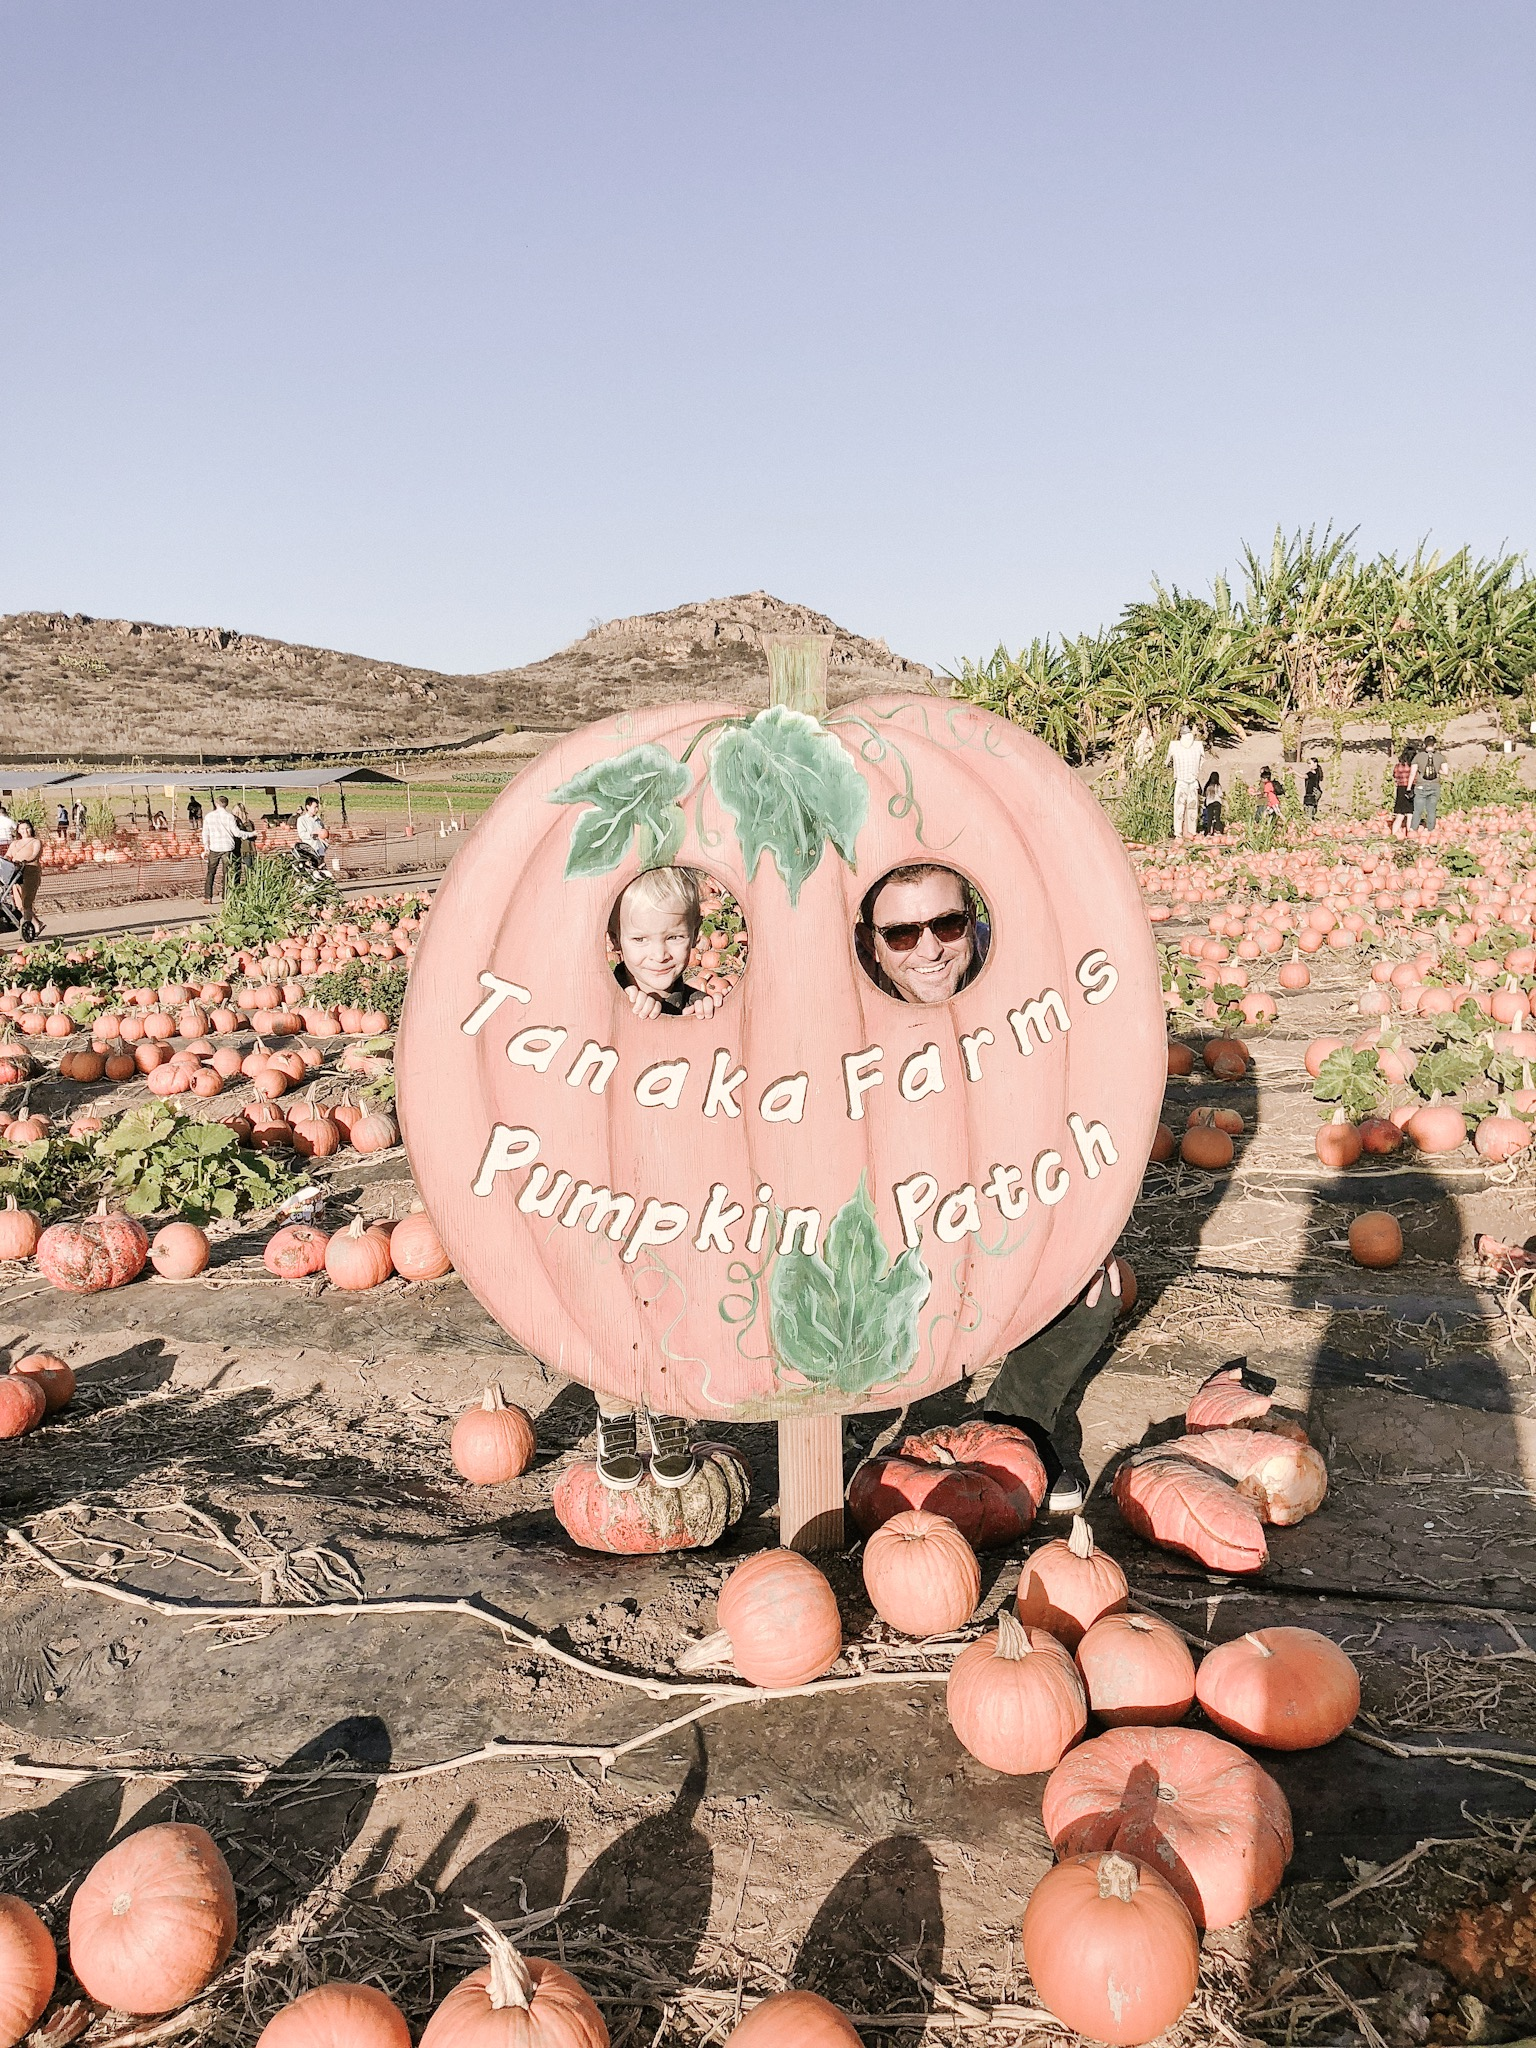 tanaka farms pumpkin patch.JPG